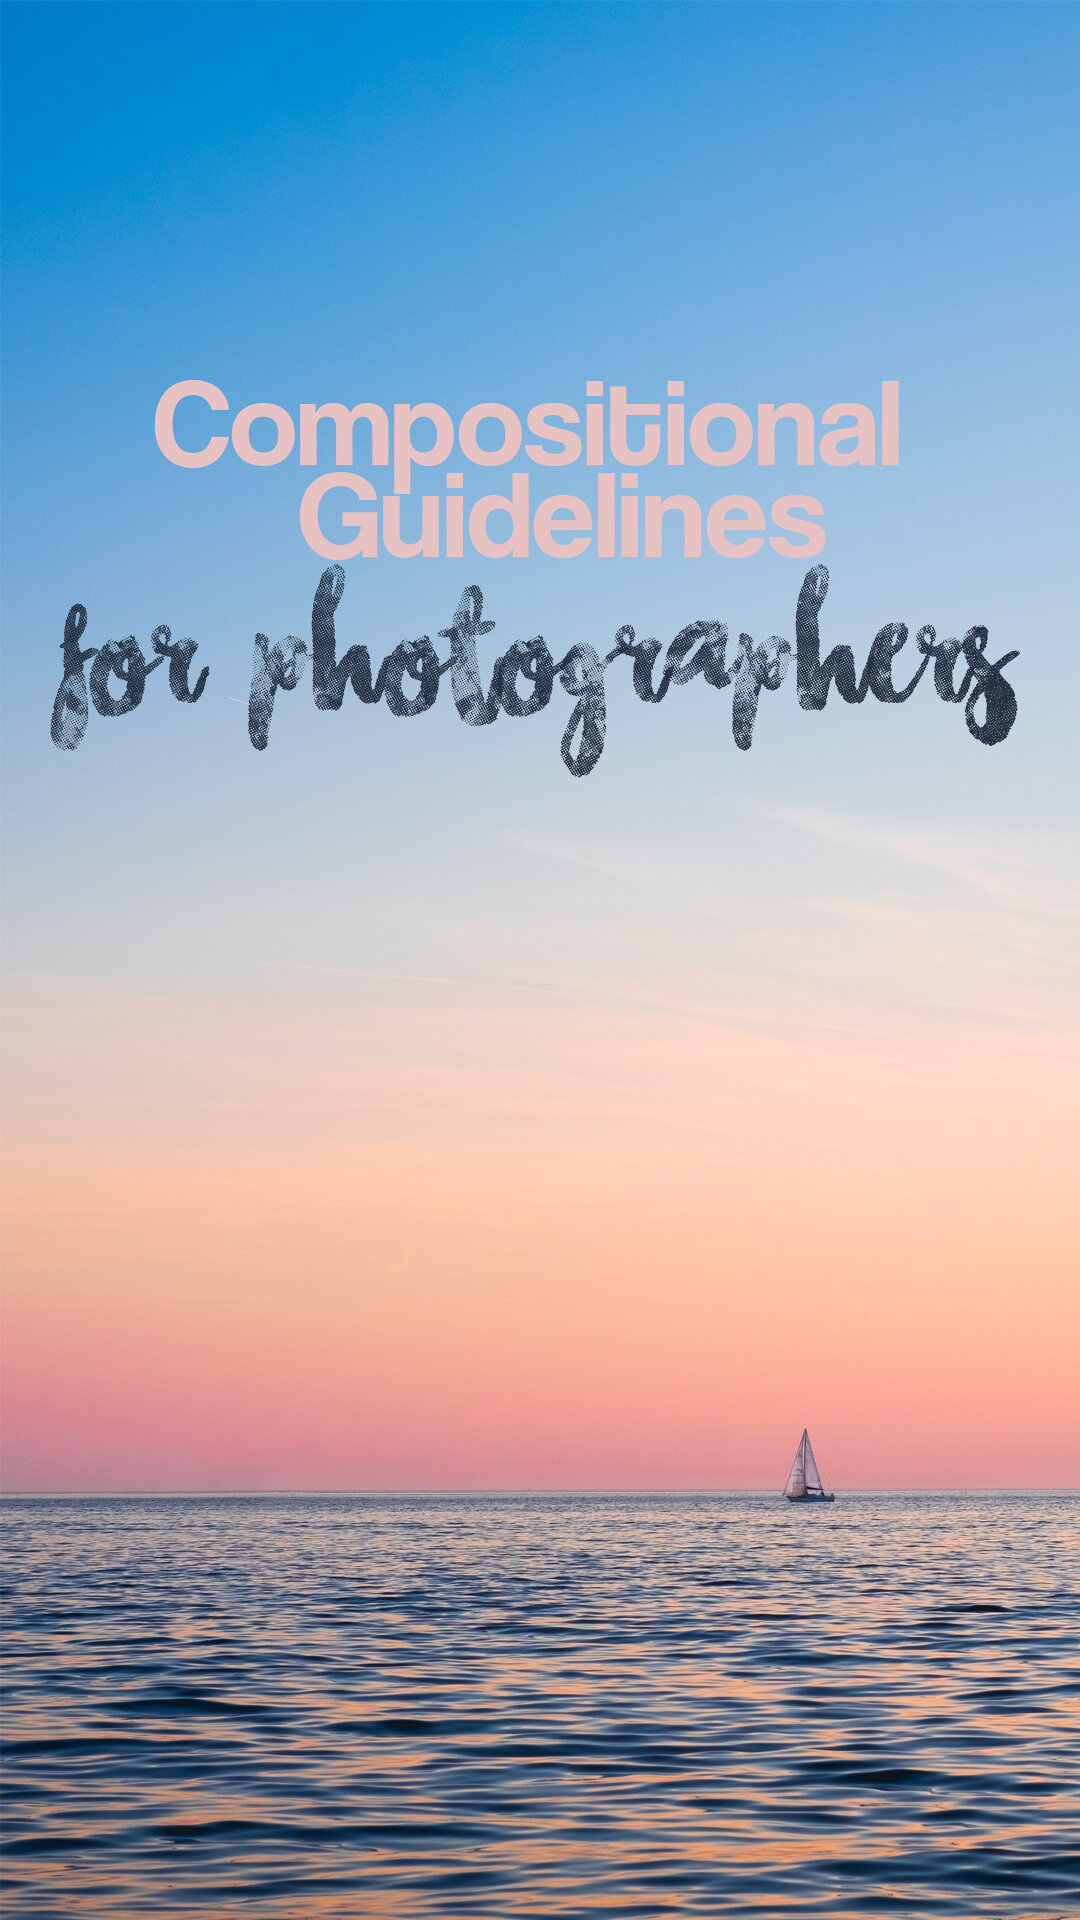 Compositional Guidelines for Photographers